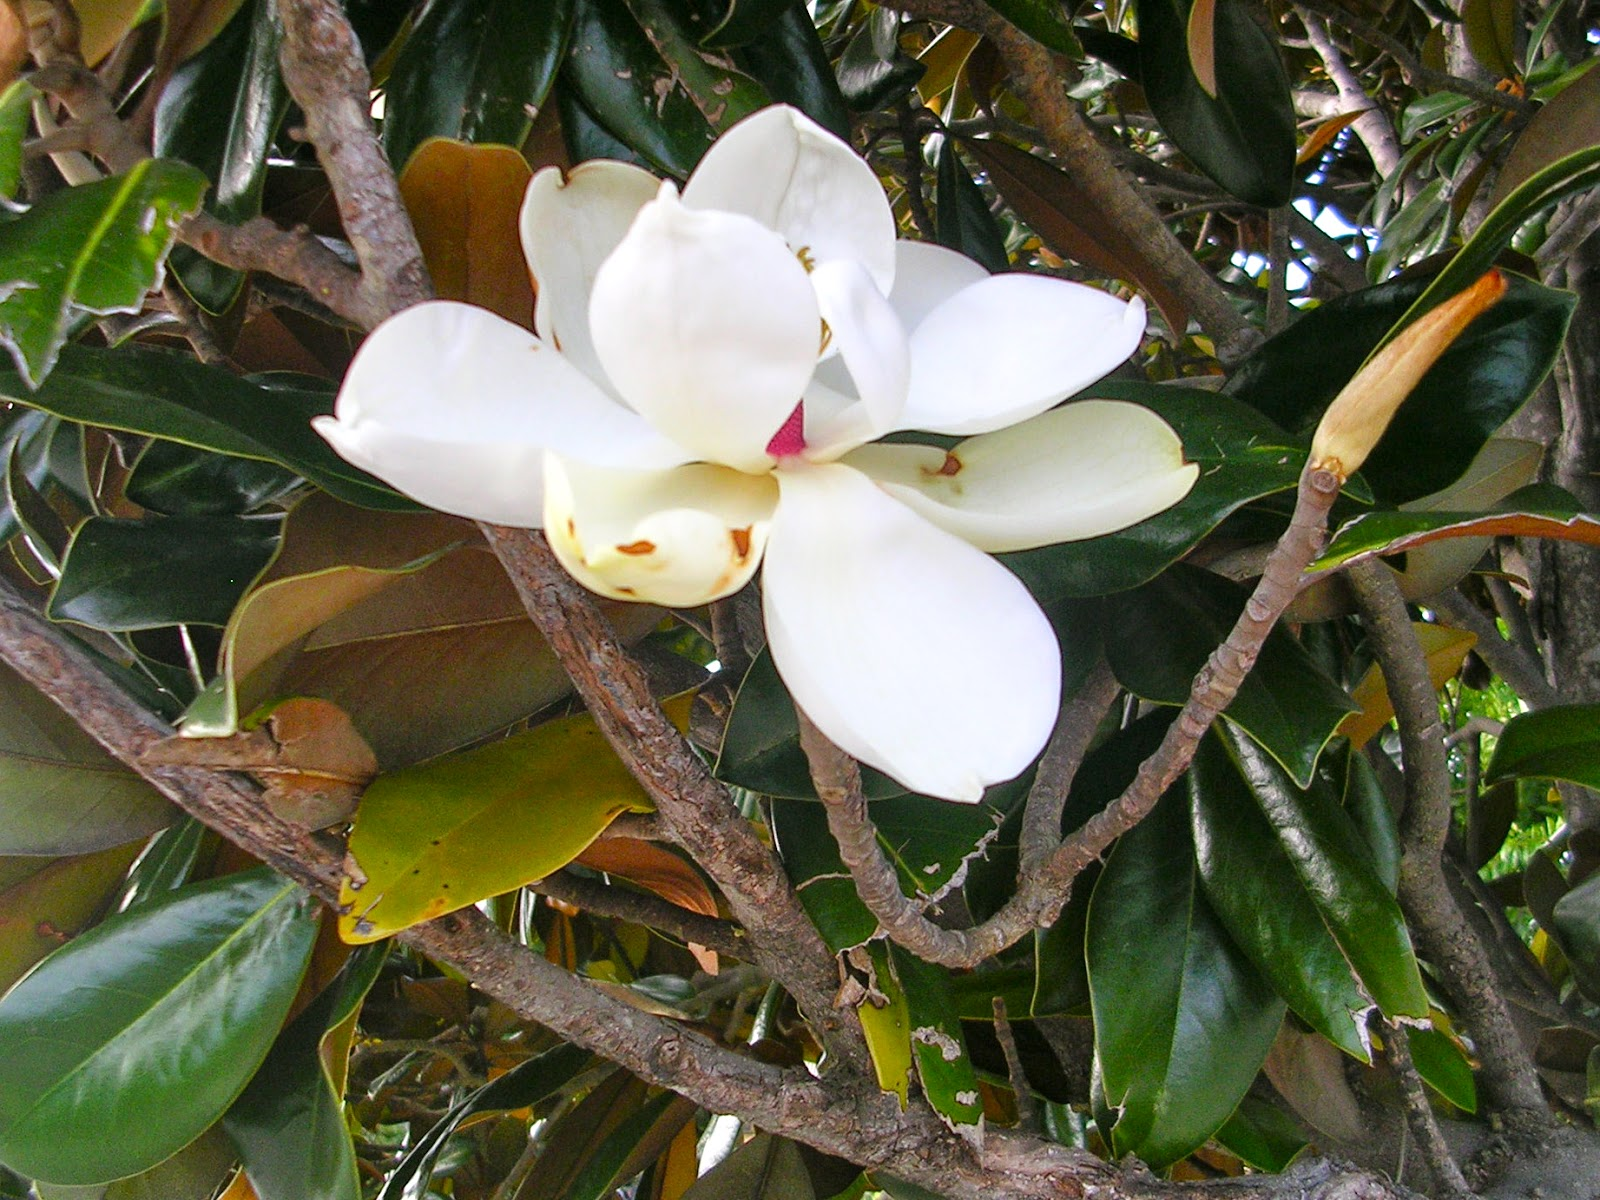 caterinagiglio the meaning of magnolia flowers, Natural flower